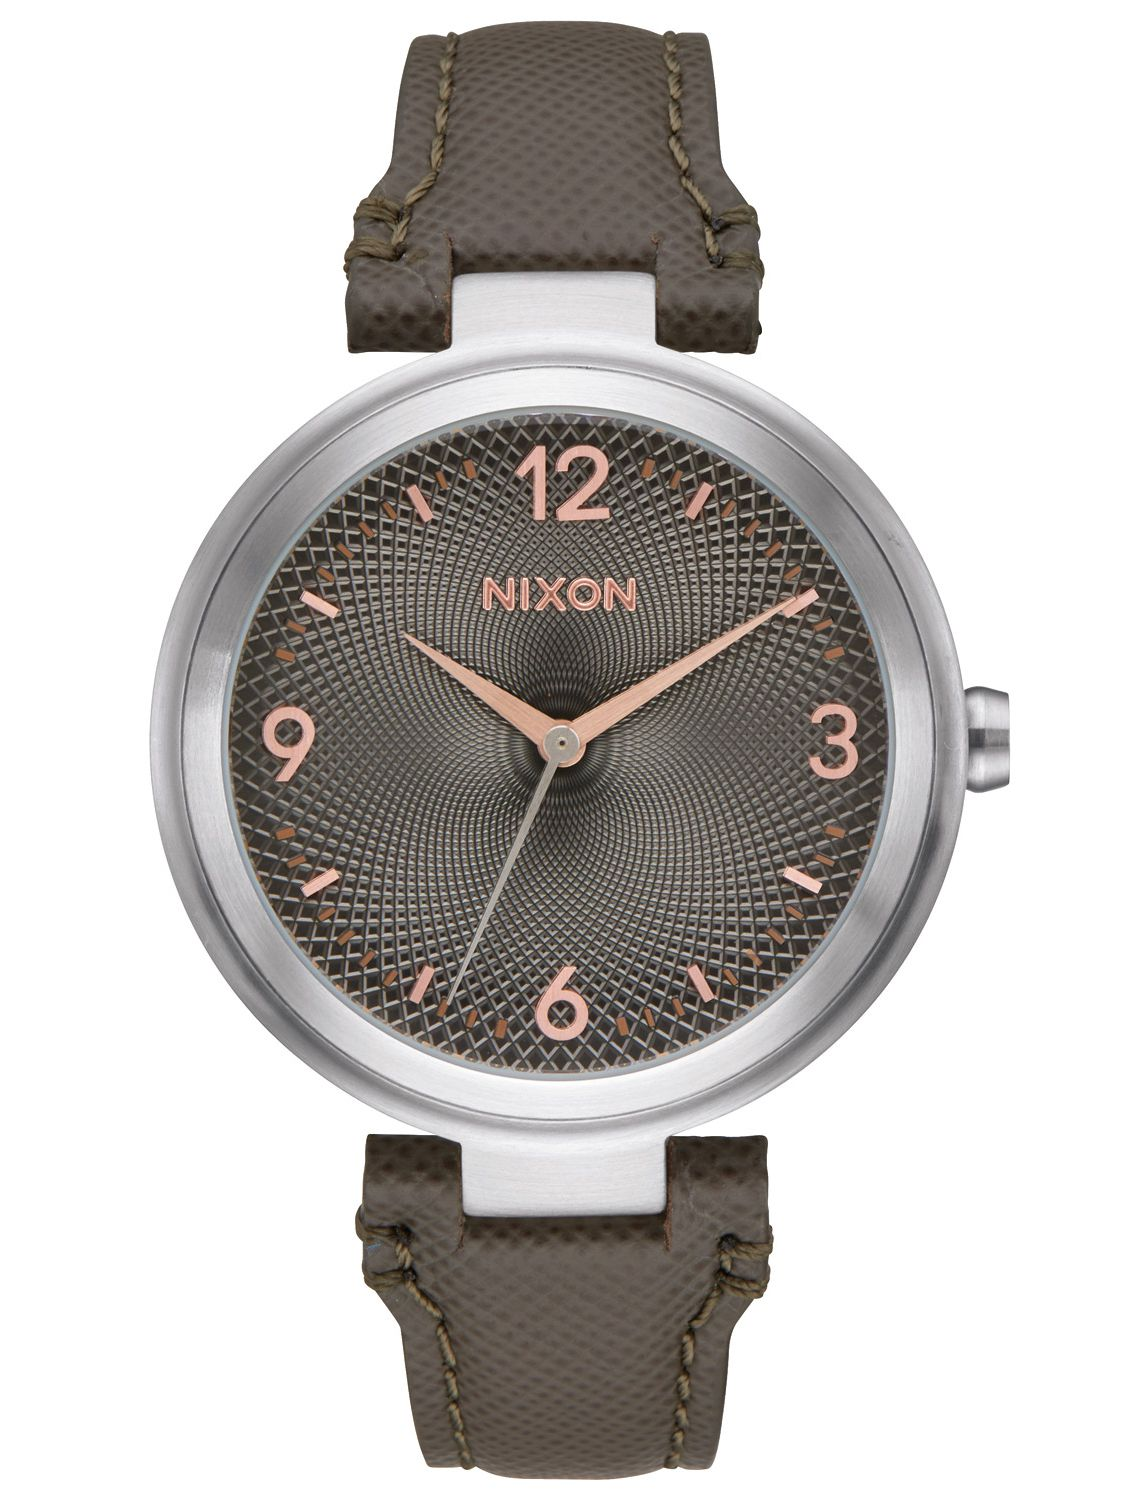 Nixon A992 2271 Chameleon Leather Damenuhr